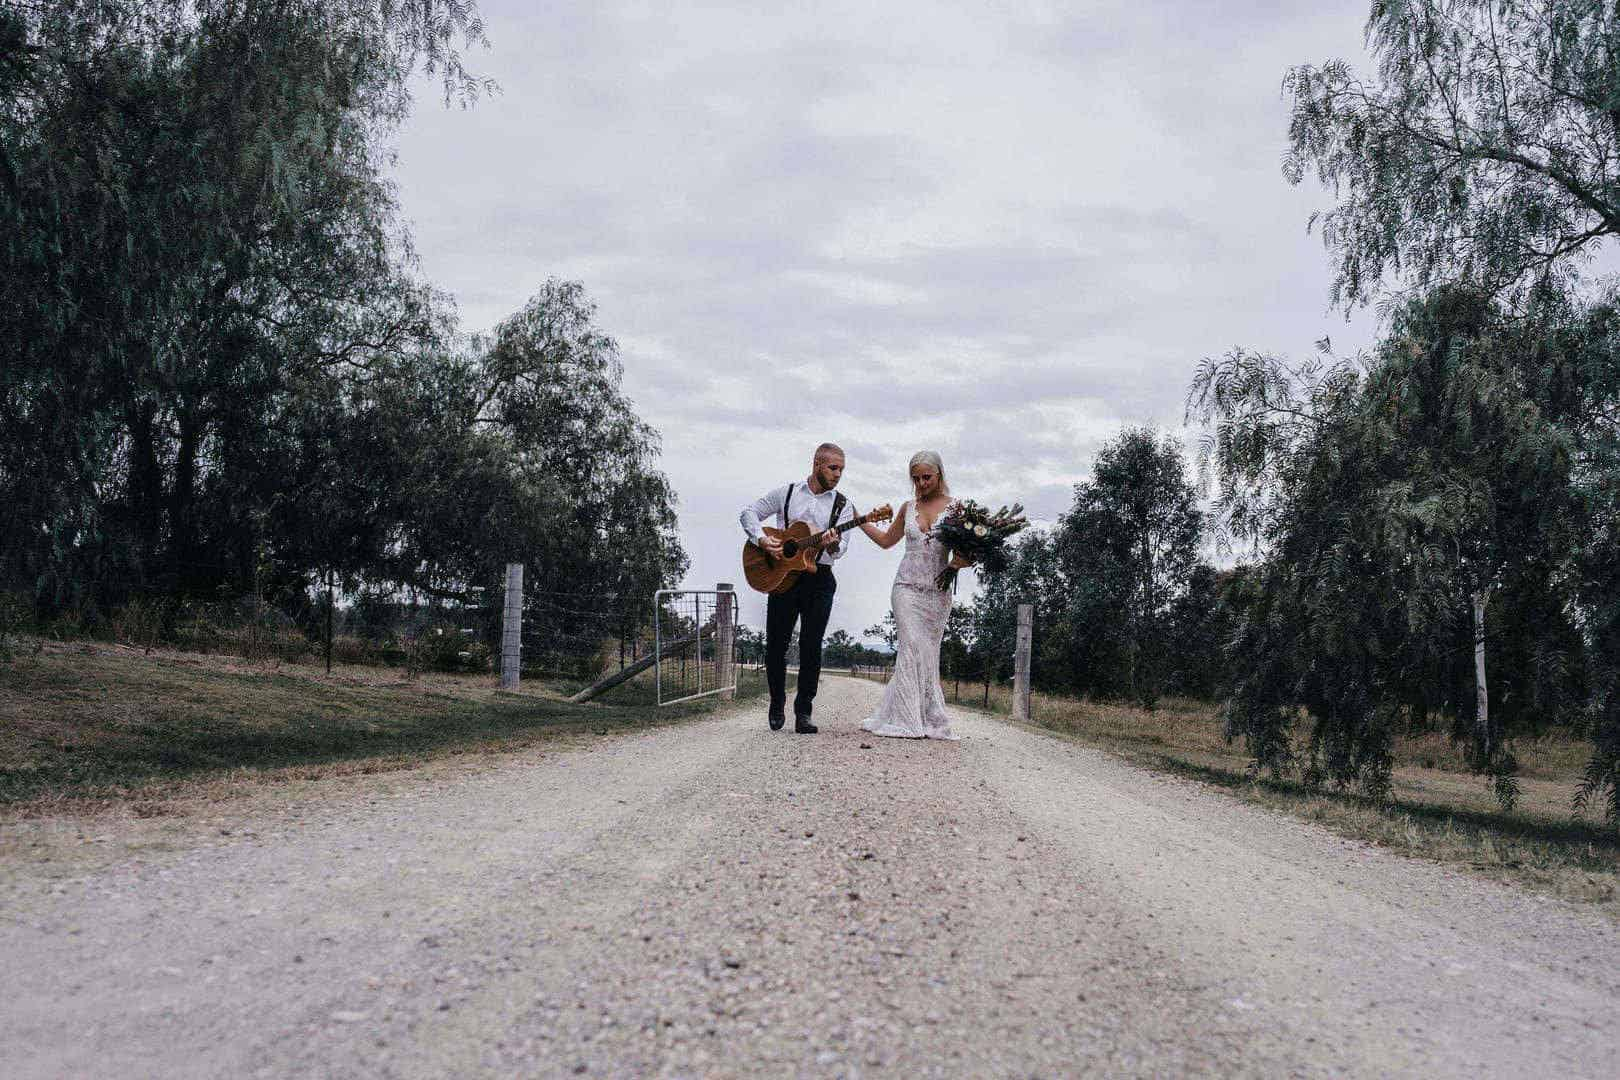 Guitarist and bride walking on a path